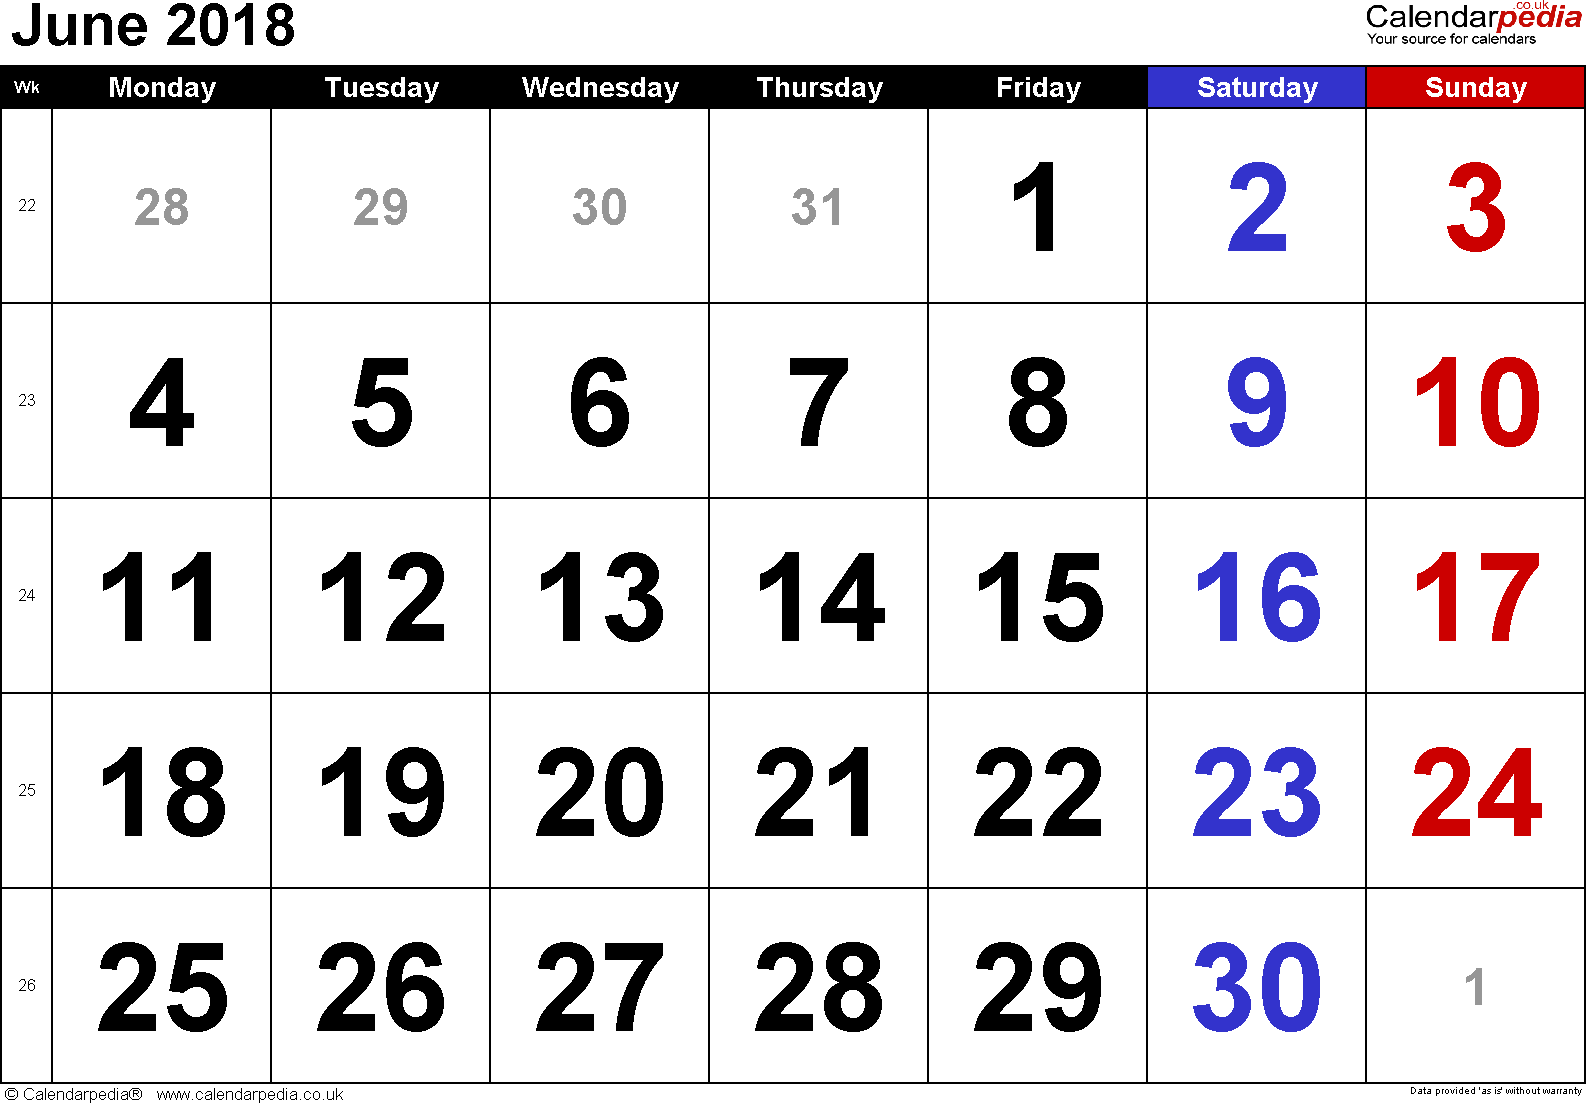 Calendar June 2018 UK, Bank Holidays, Excel/PDF/Word Templates